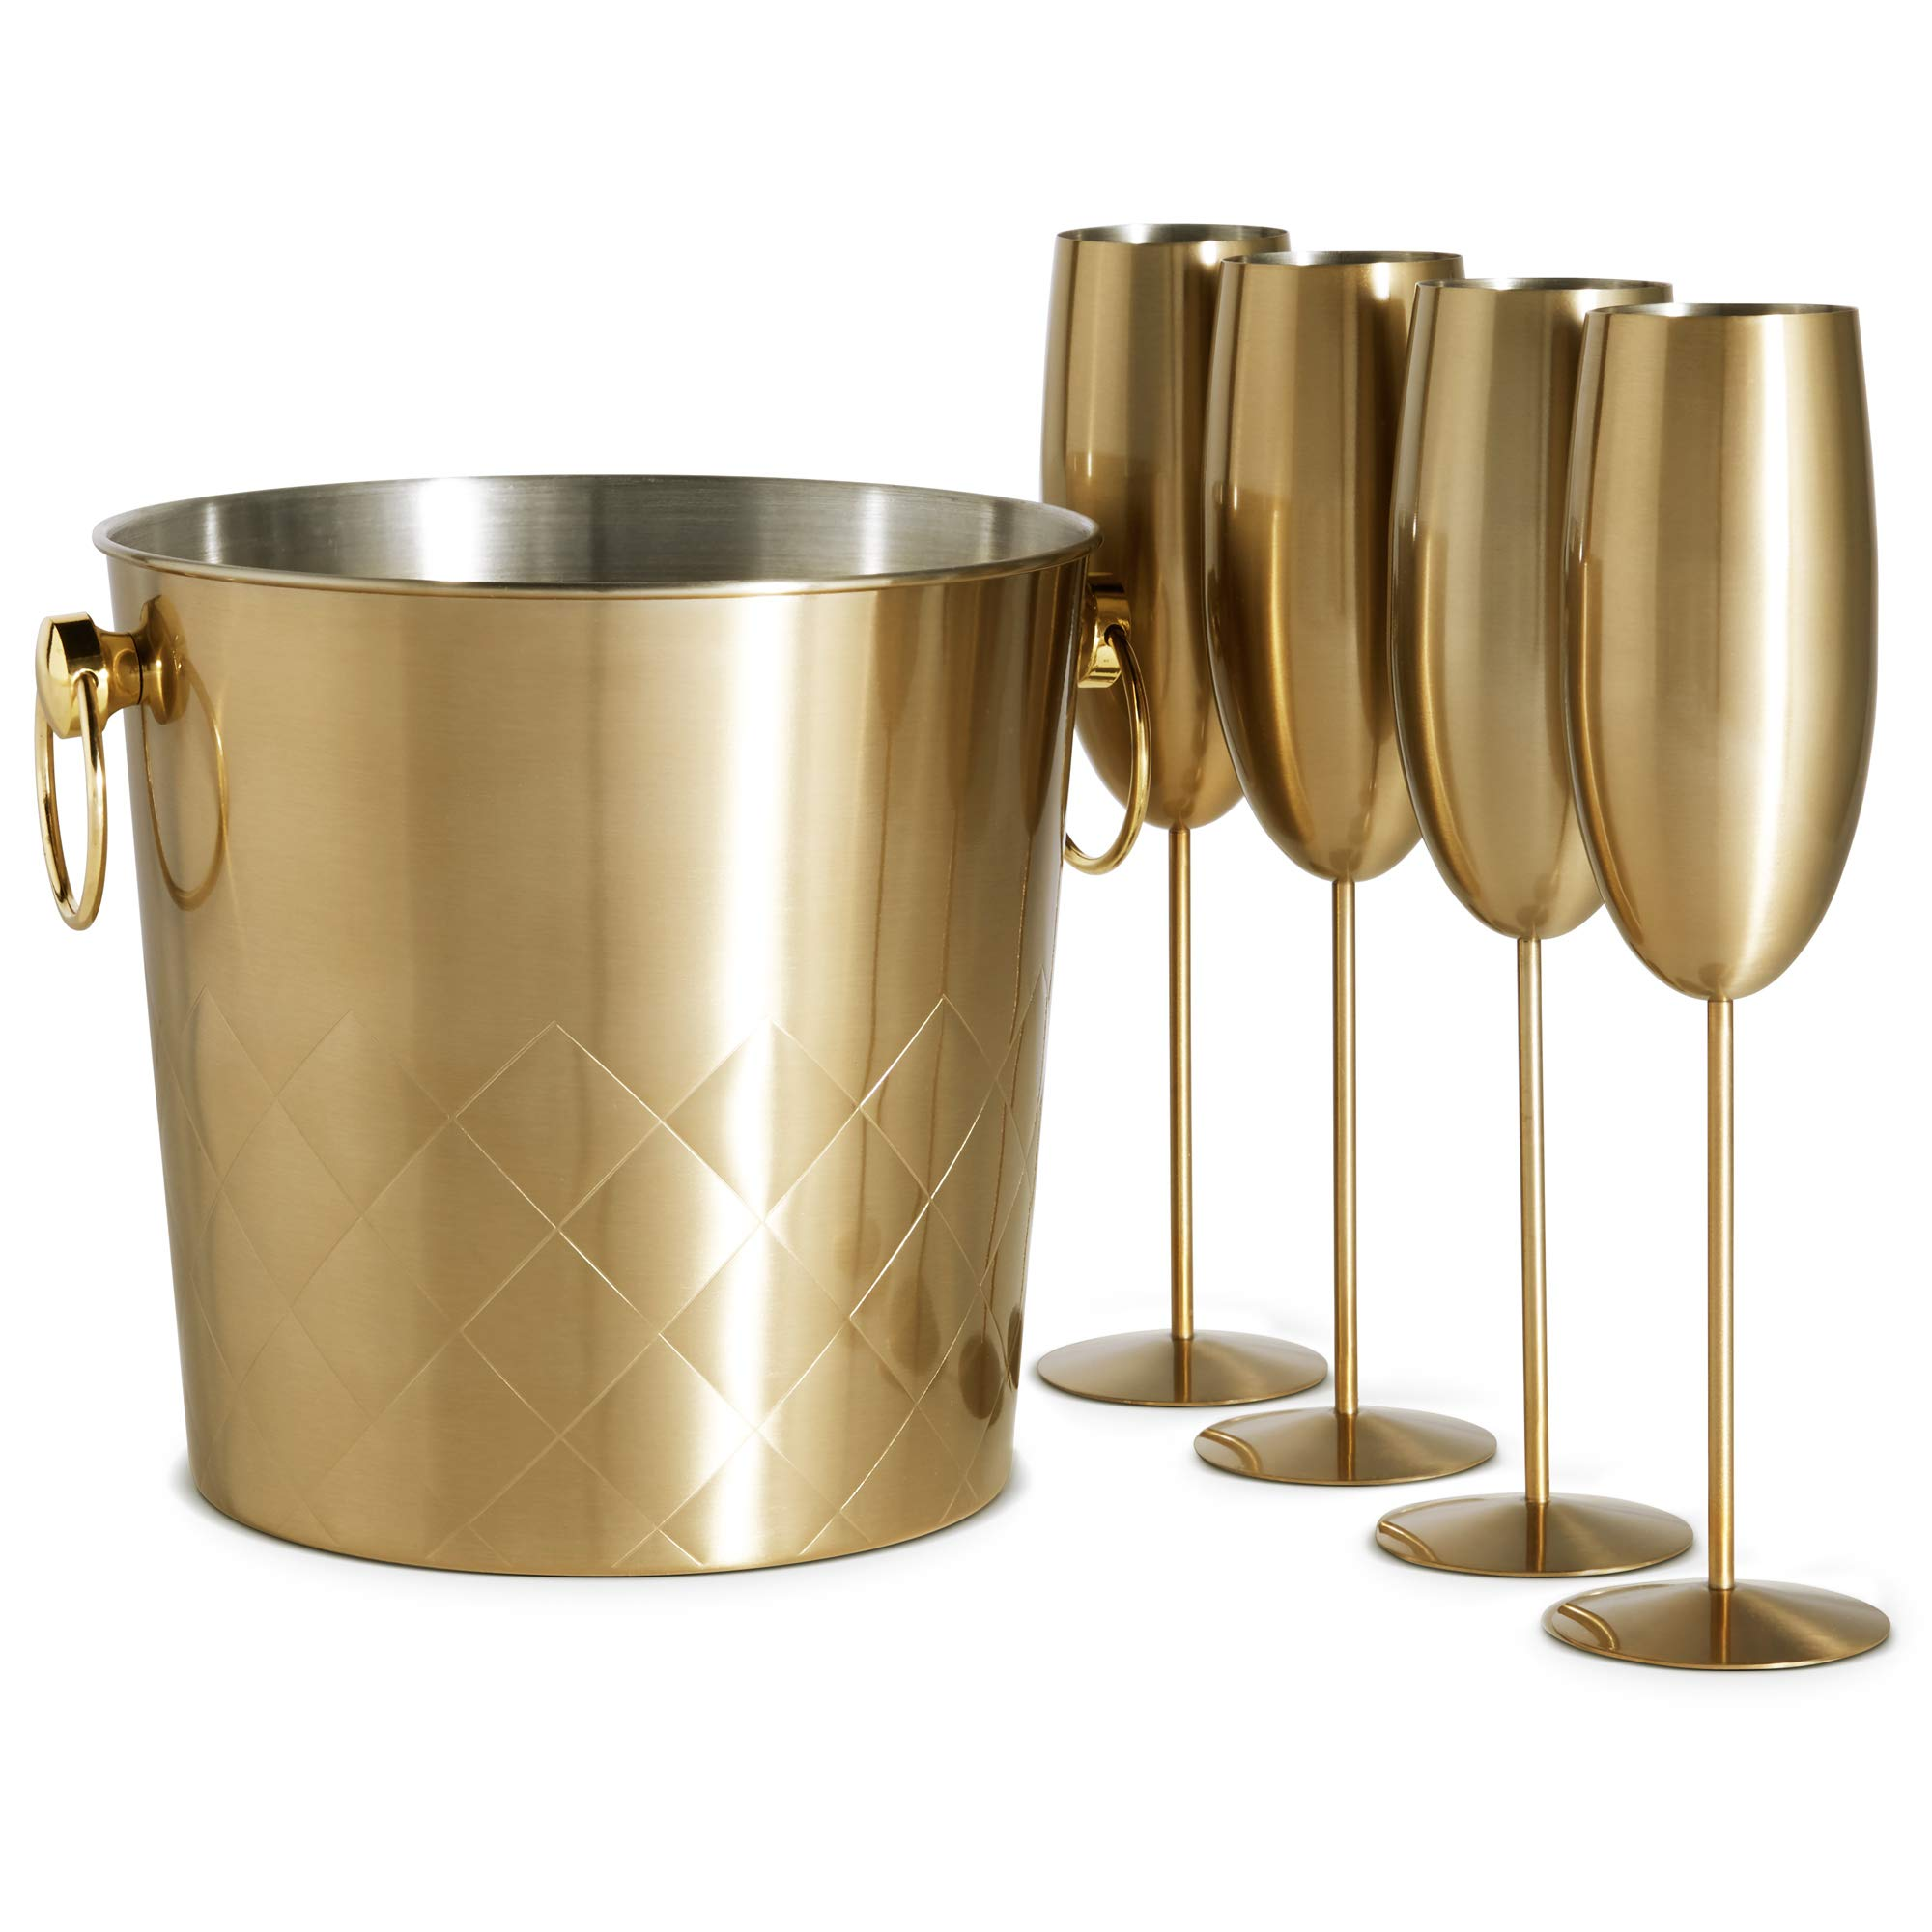 VonShef Brushed Gold Champagne Bucket with 4 Gold Champagne Flutes Glasses, 175oz, Etched Stainless Steel Ice Bucket with Carry Handles by VonShef